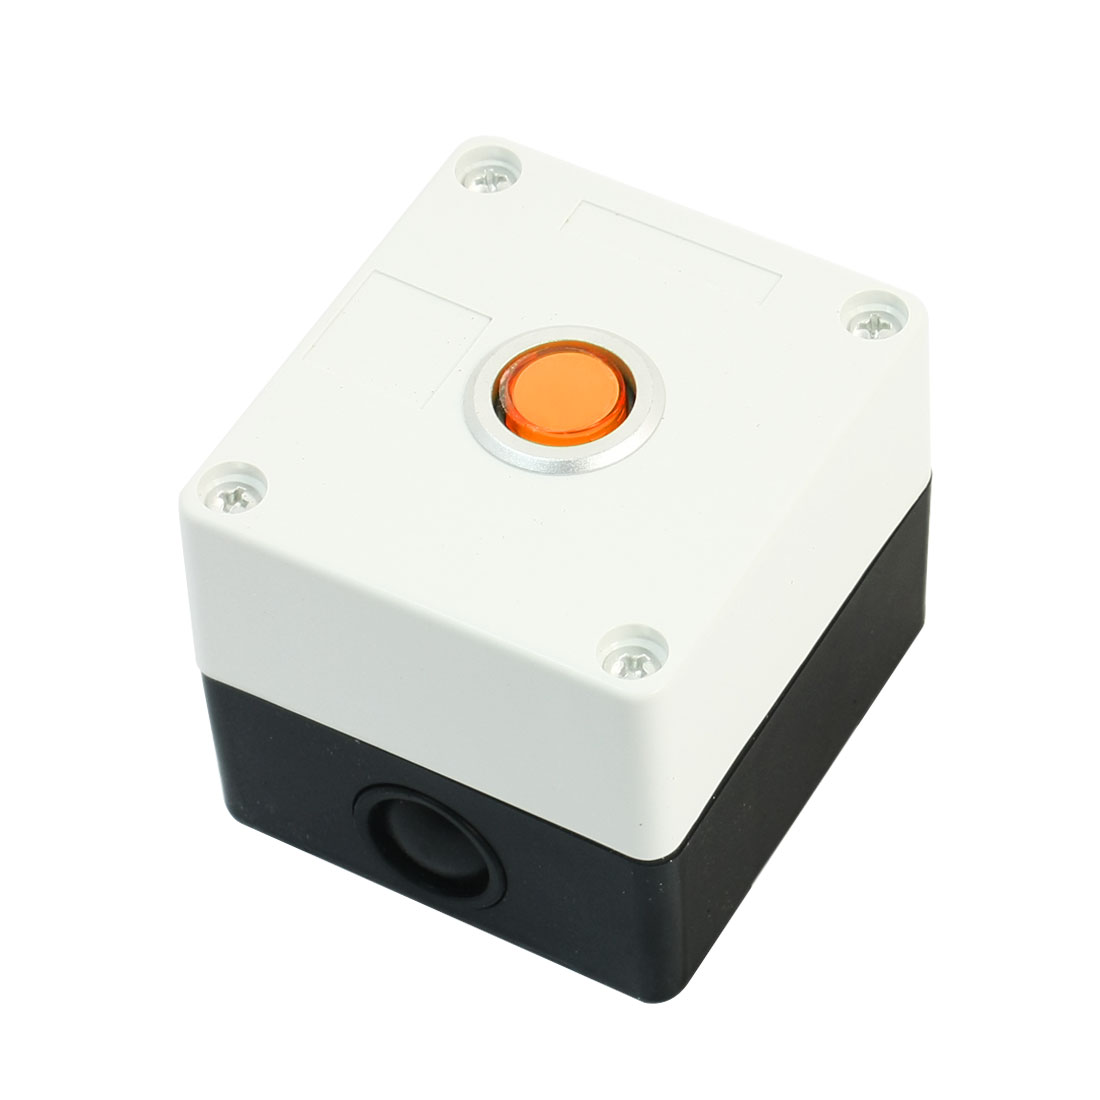 220V 15mm Dia Rectangle White Plastic Case Orange Accident Signal Indicator Light Pilot Lamp Control Station Box